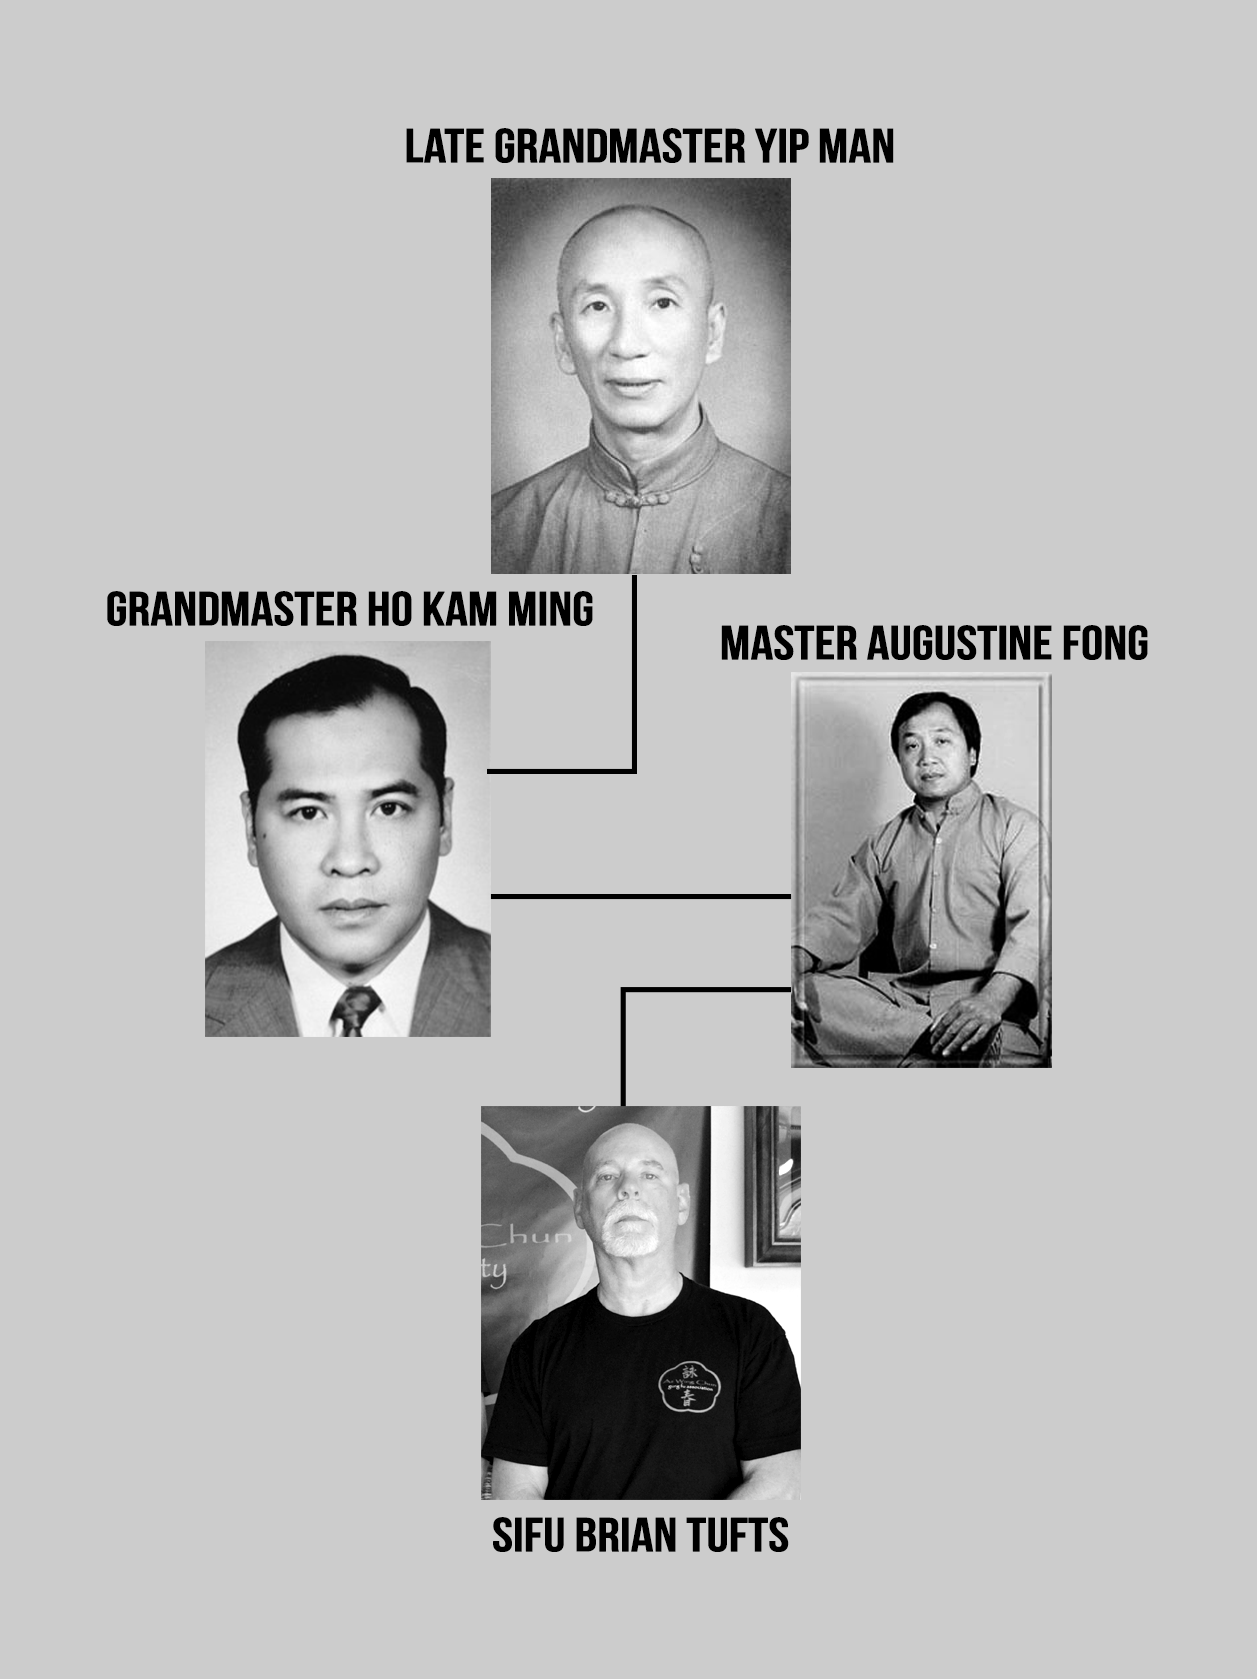 Sifu Tuft's close lineage to the late Grandmaster Yip Man.